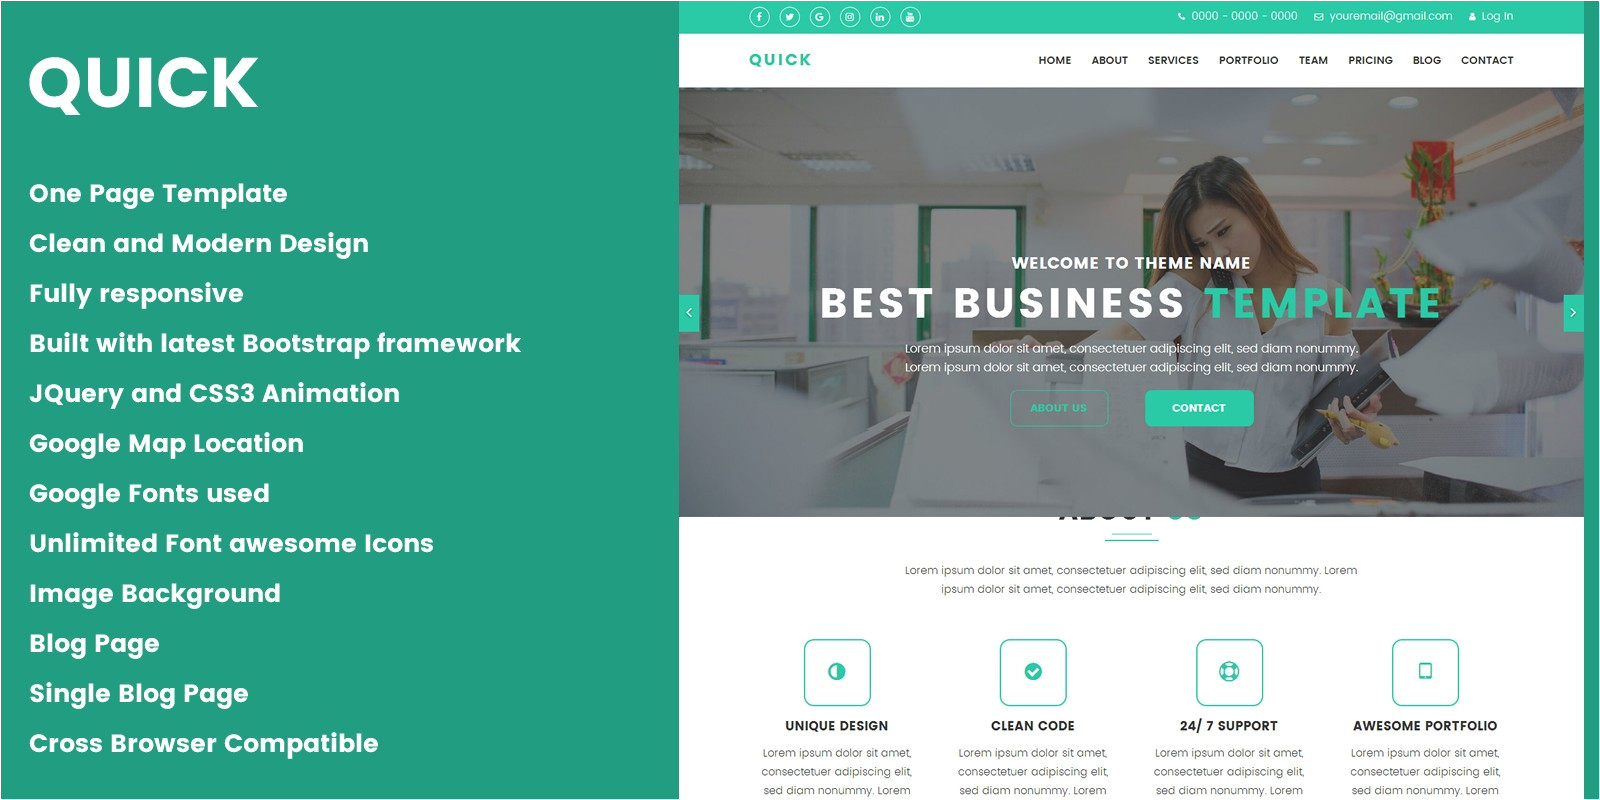 Quick HTML Template Quick Creative Design Agency HTML Template Codester